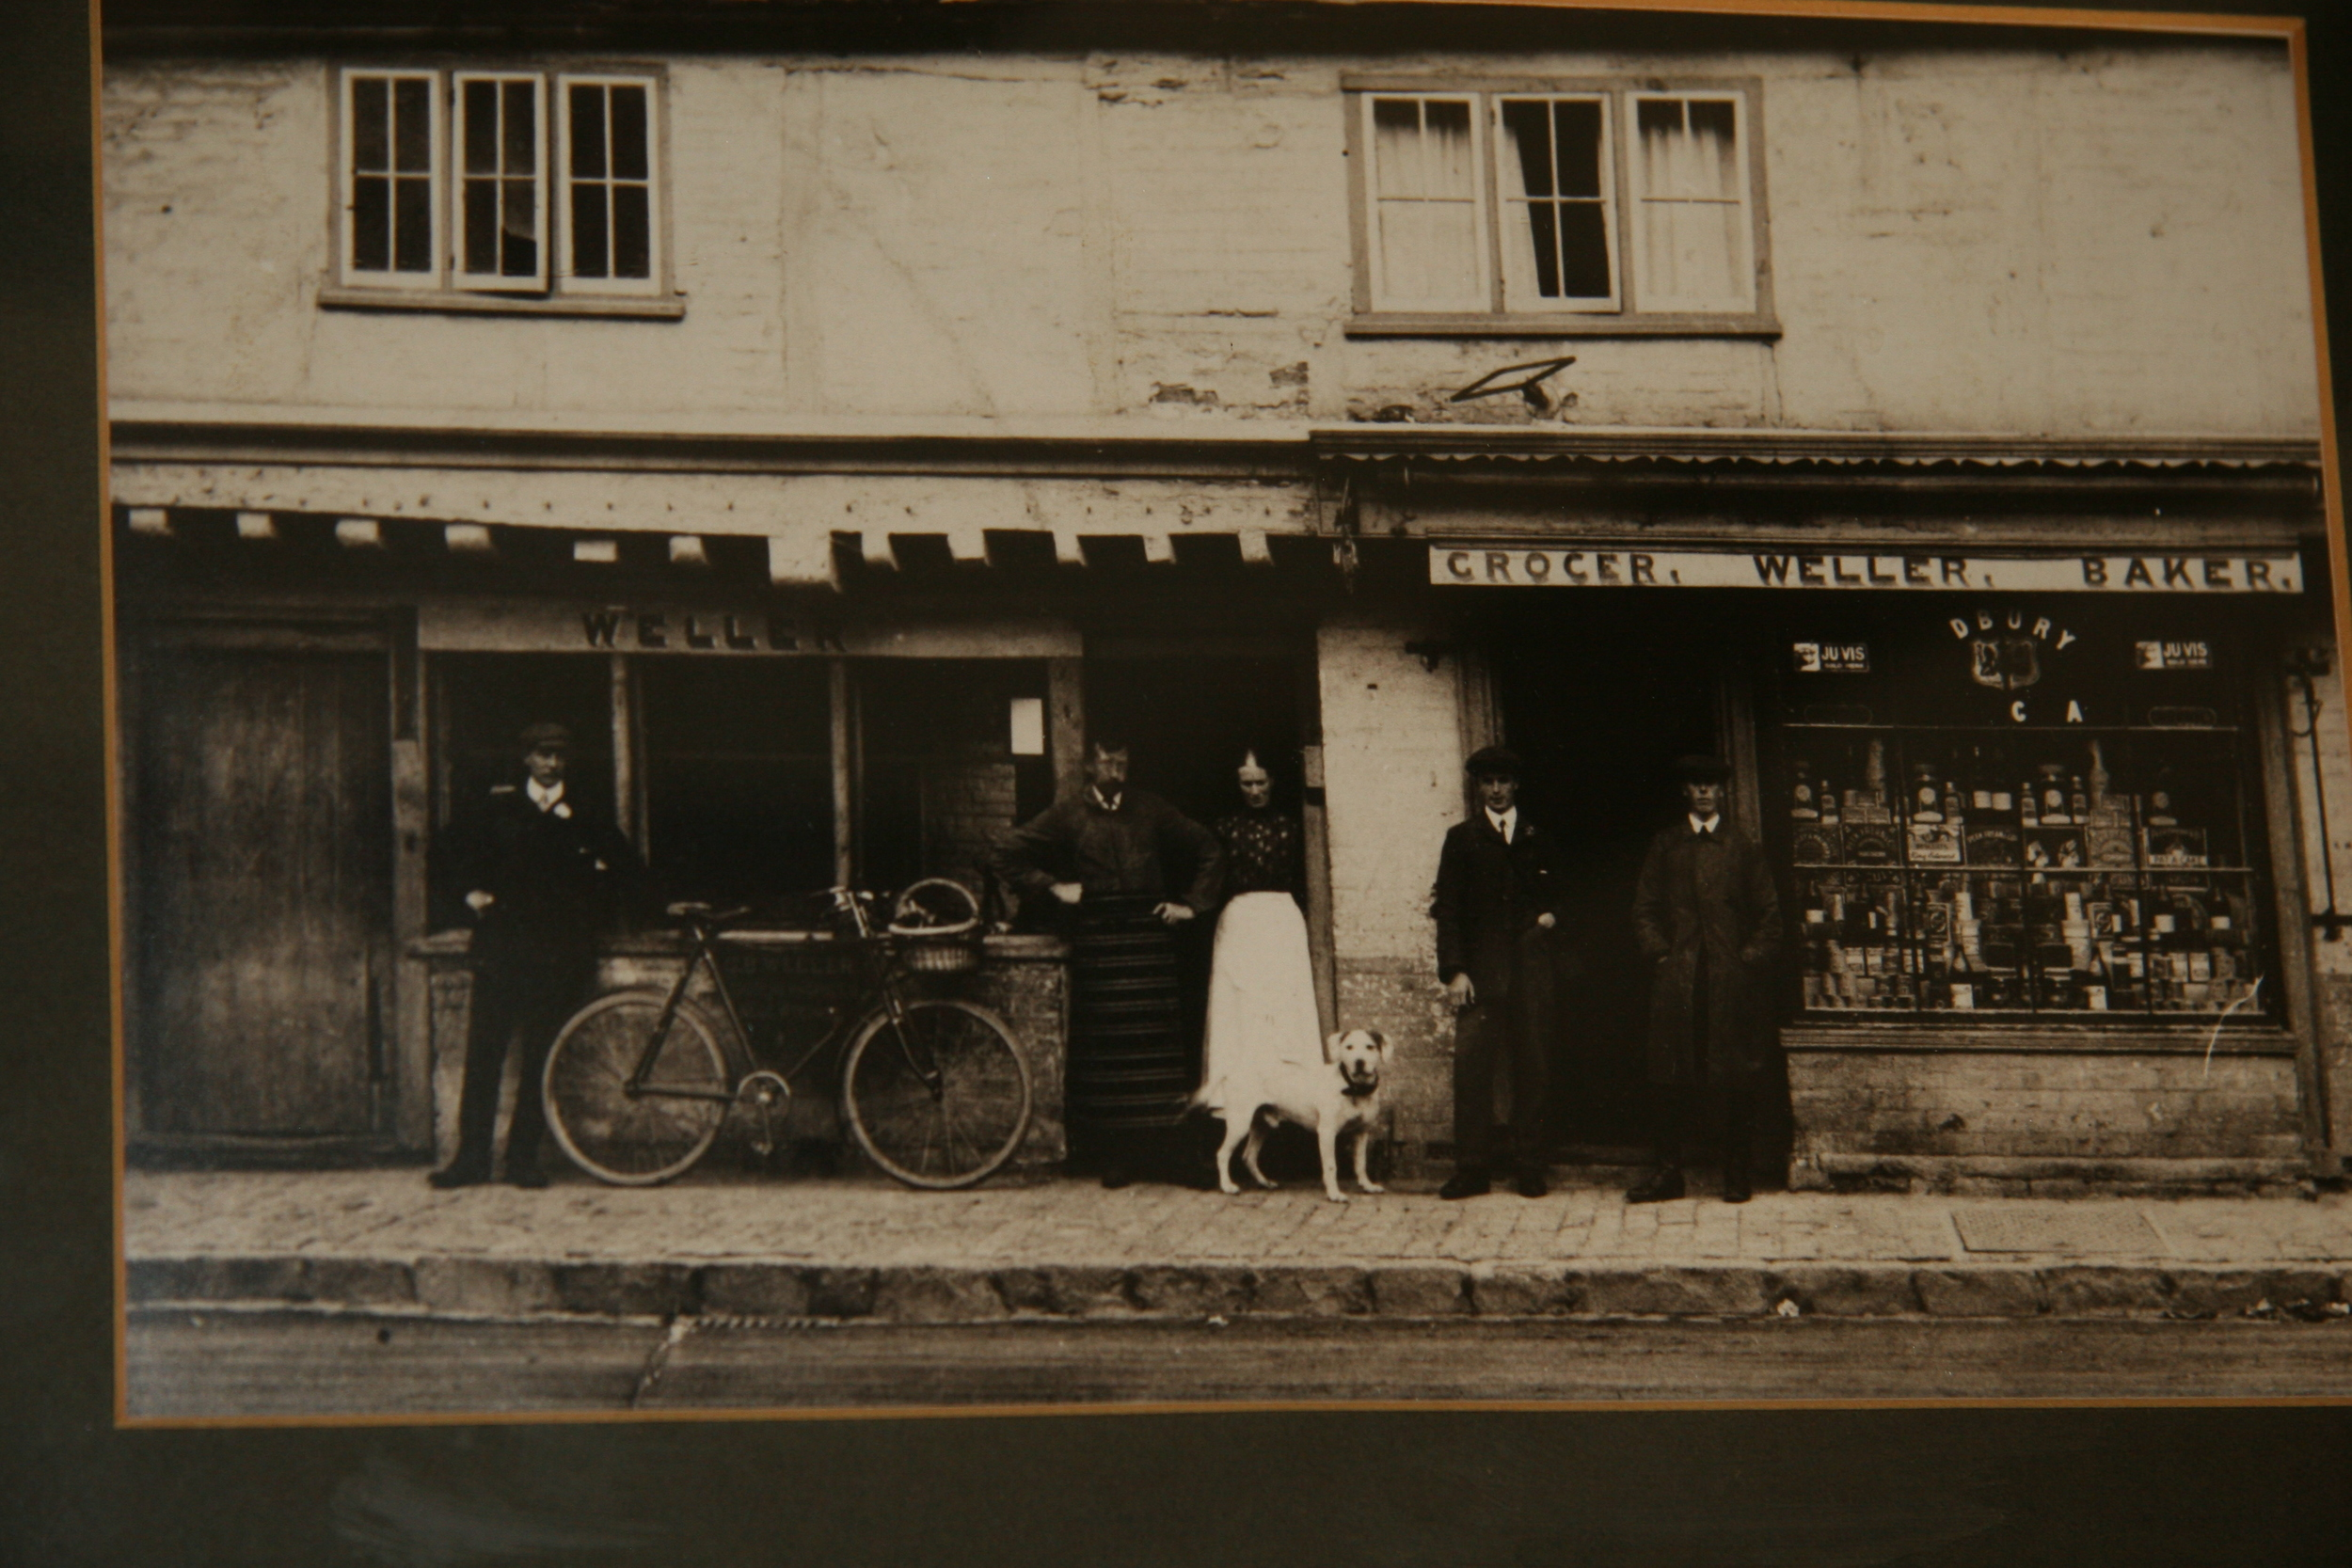 Fabulous Shop Front Photograph Of The Shop In Years Gone By.